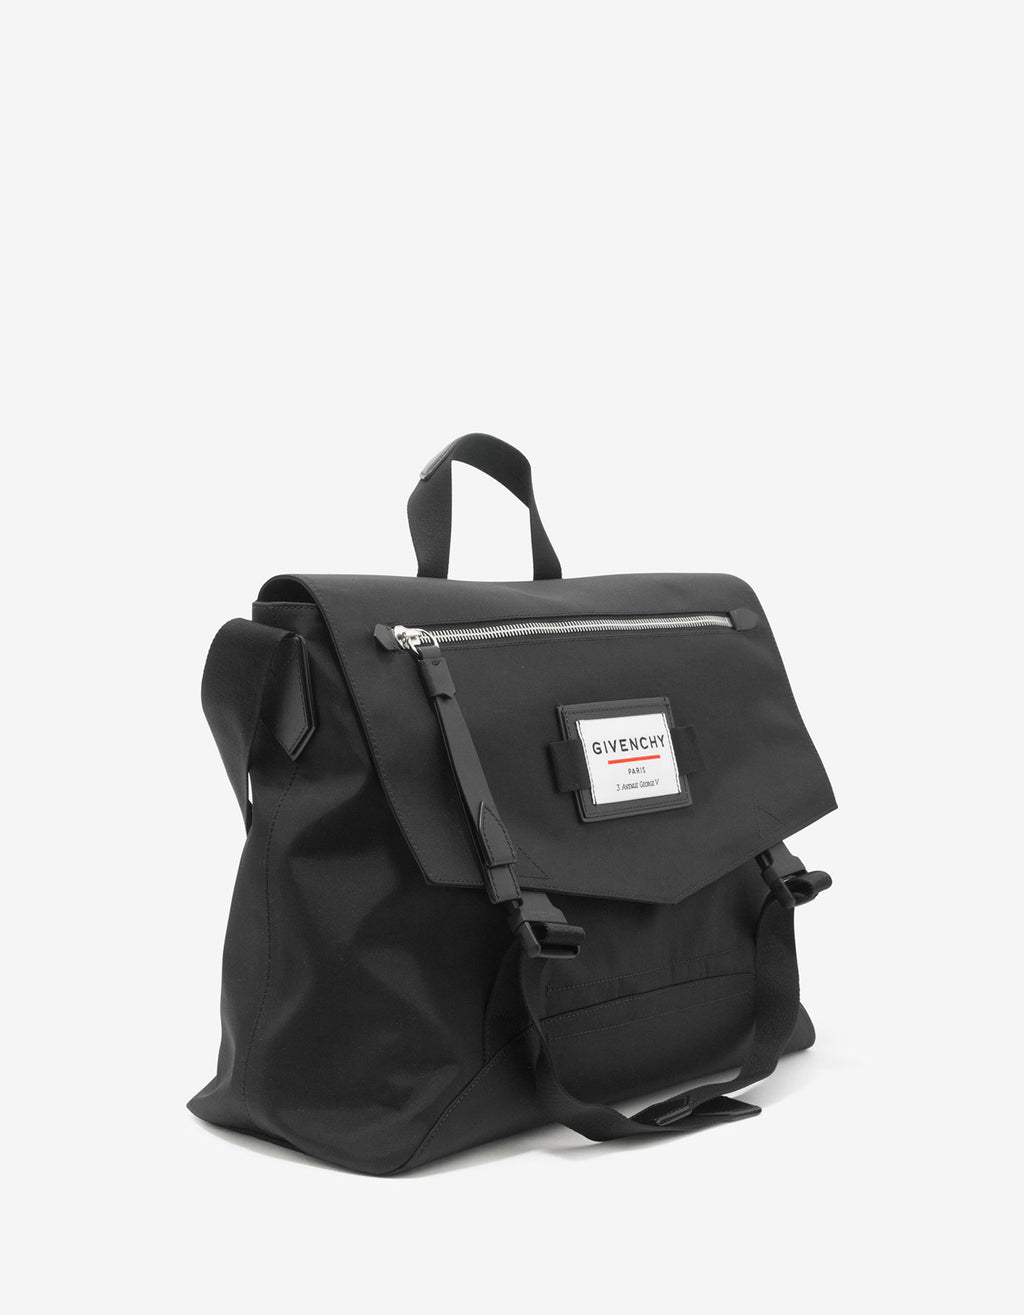 Downtown Black Nylon Messenger Bag